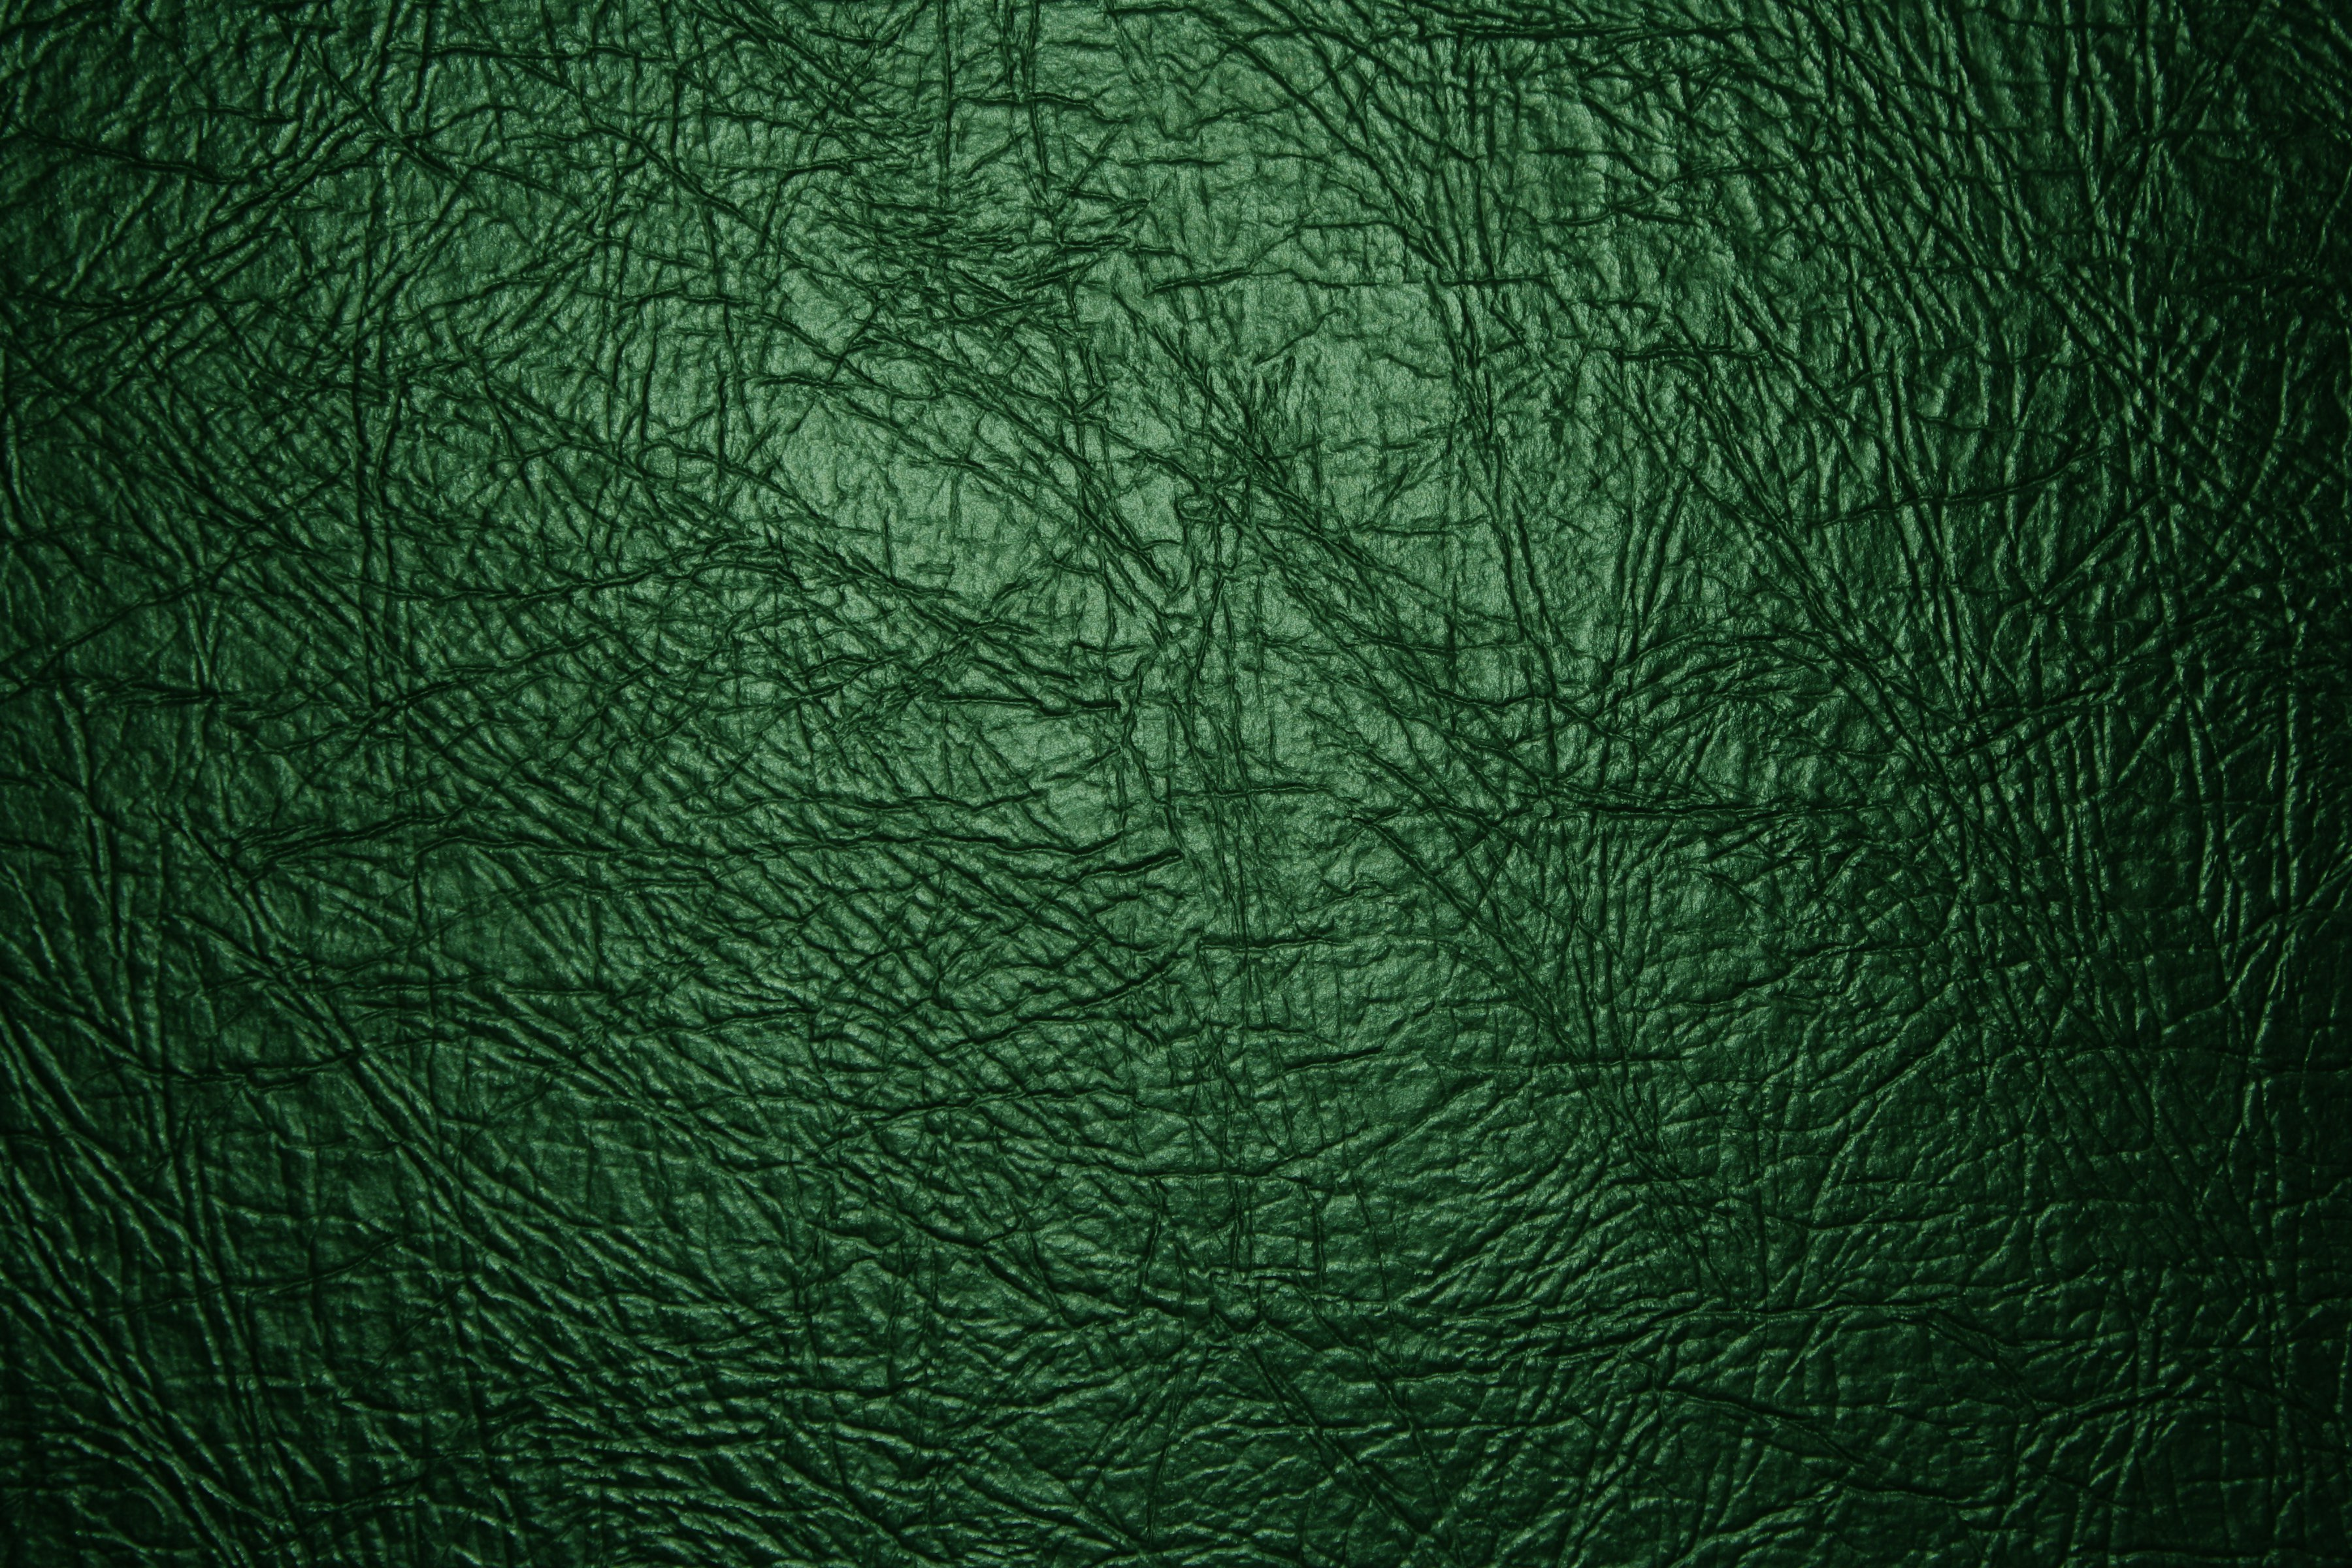 green texture wallpaper from - photo #28